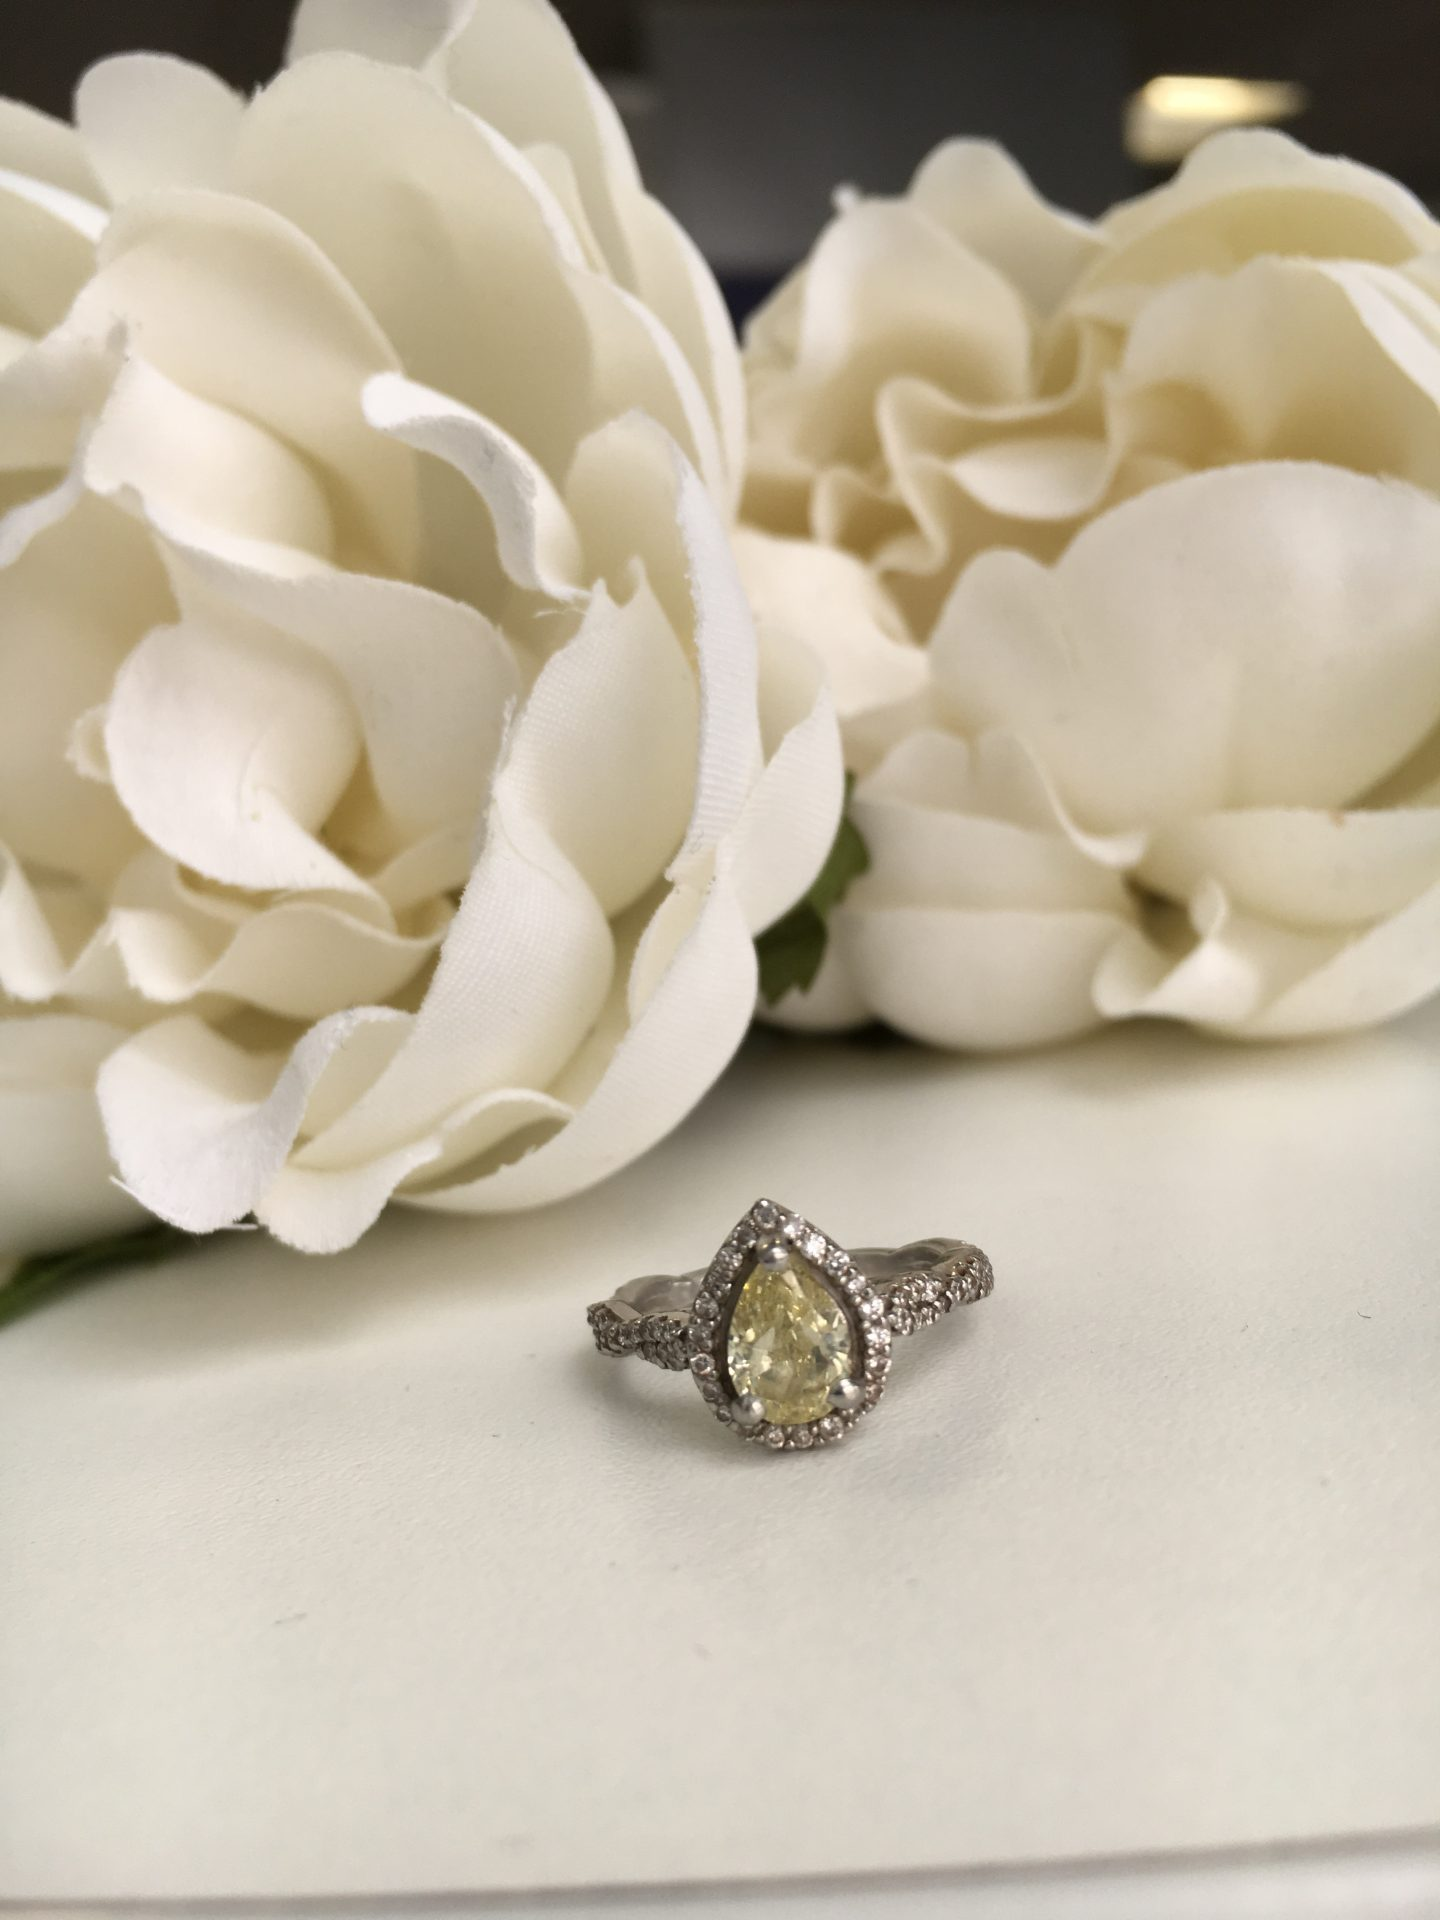 OUR PROPOSAL STORY + MY ENGAGEMENT RING DESIGN